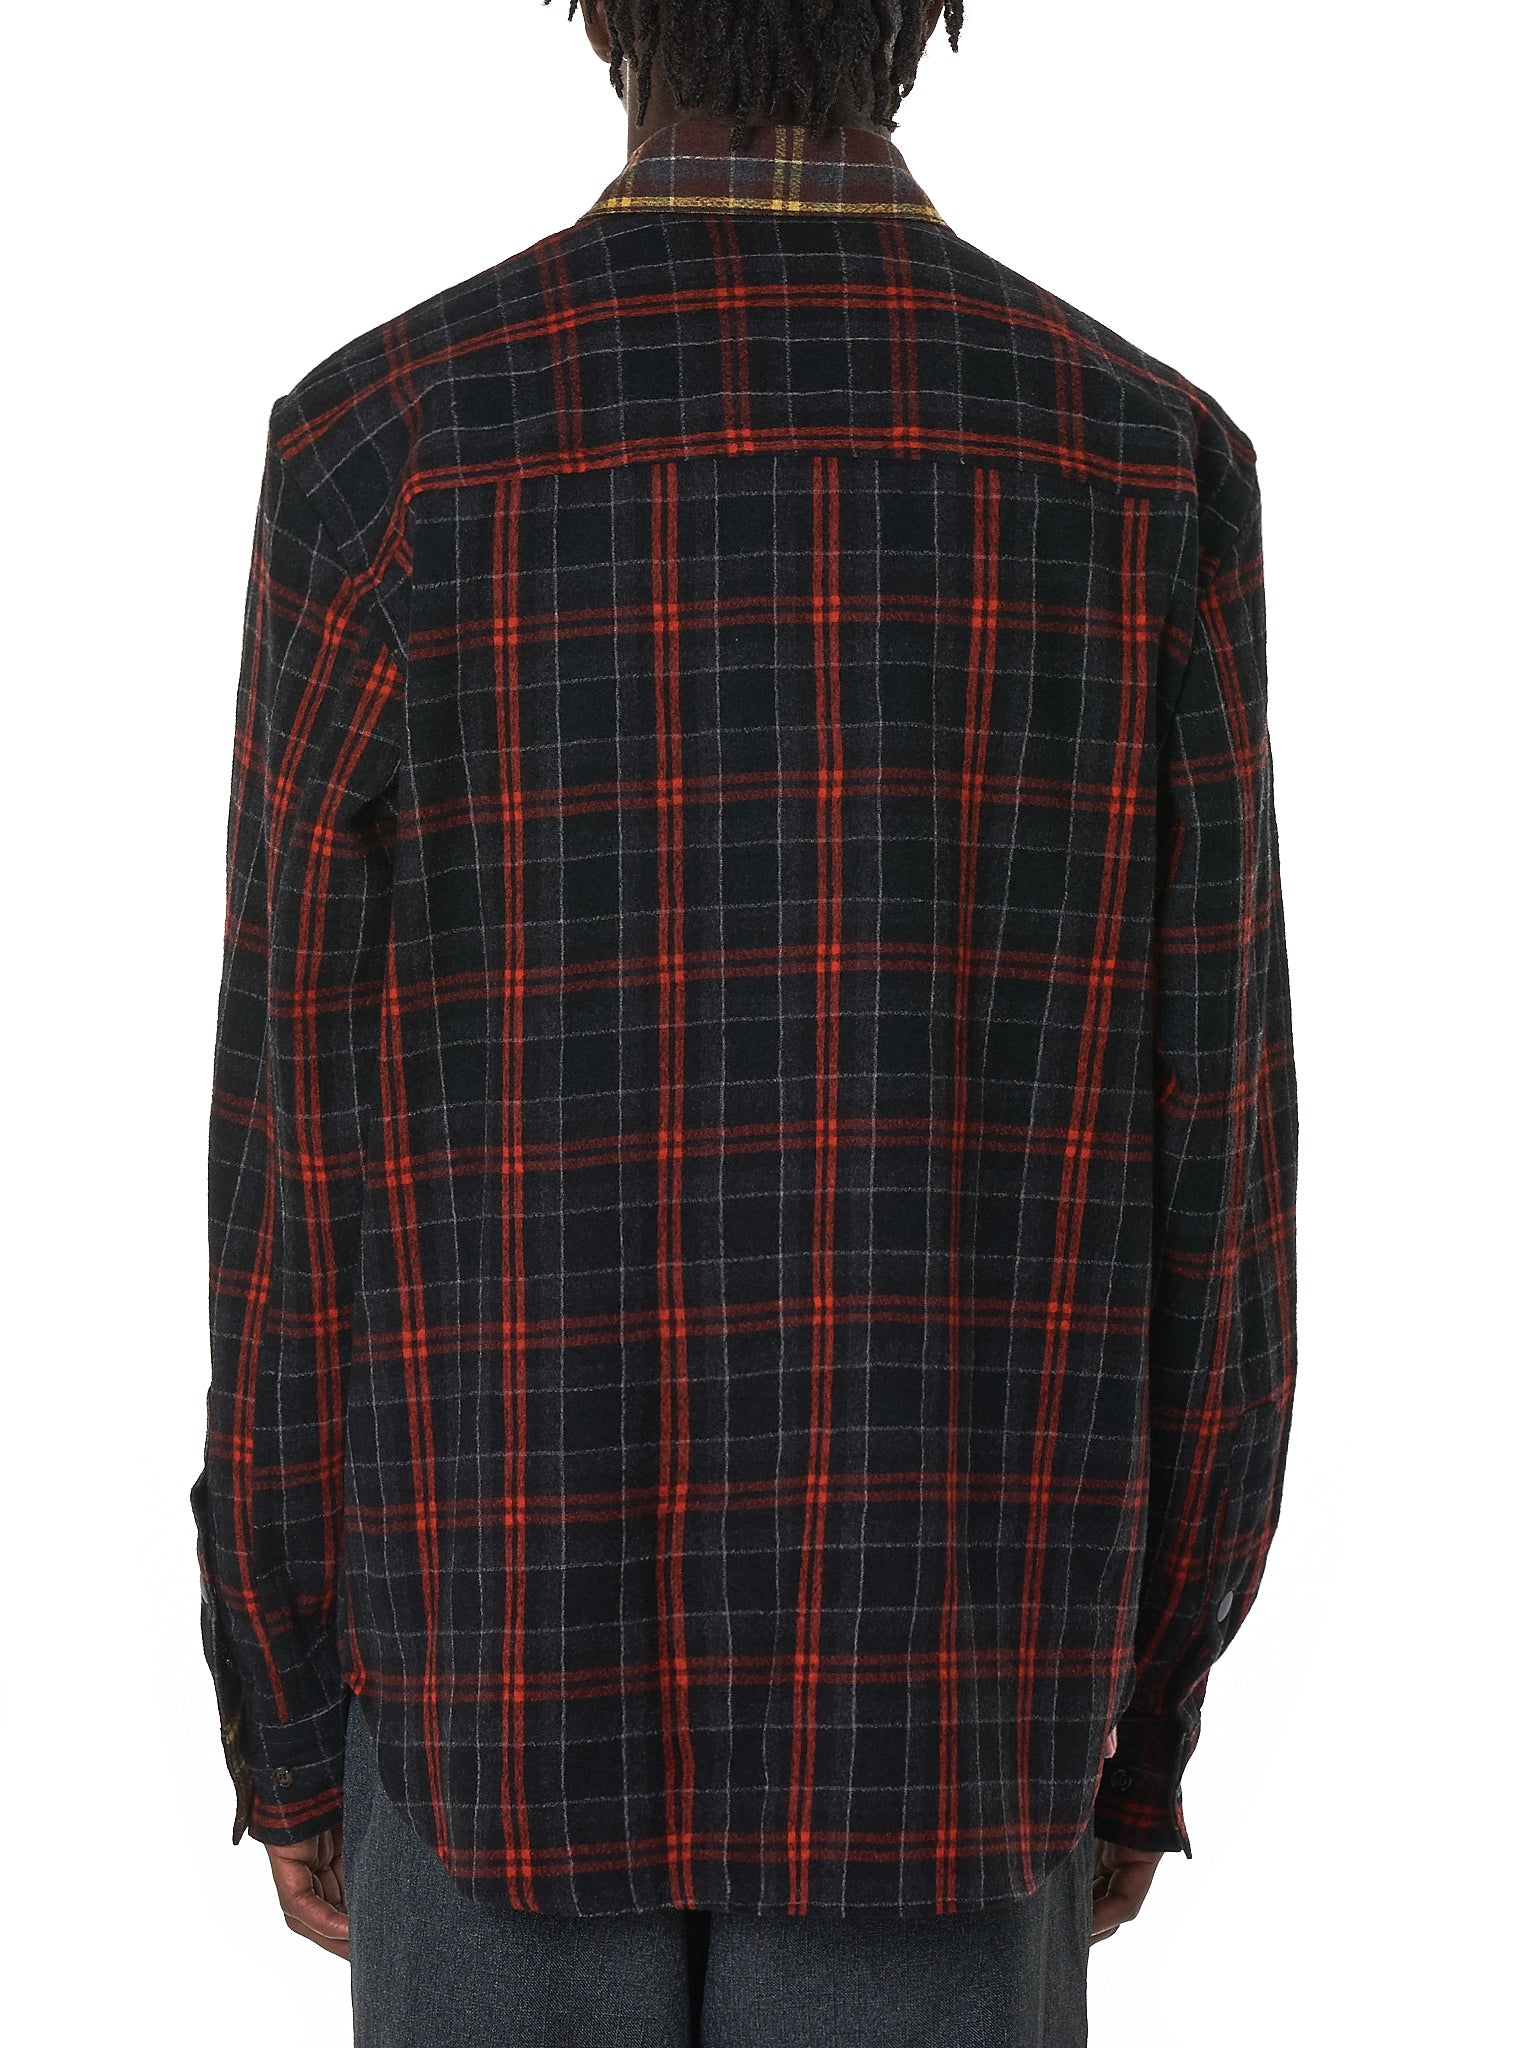 Marni Flannel Shirt - Hlorenzo Back